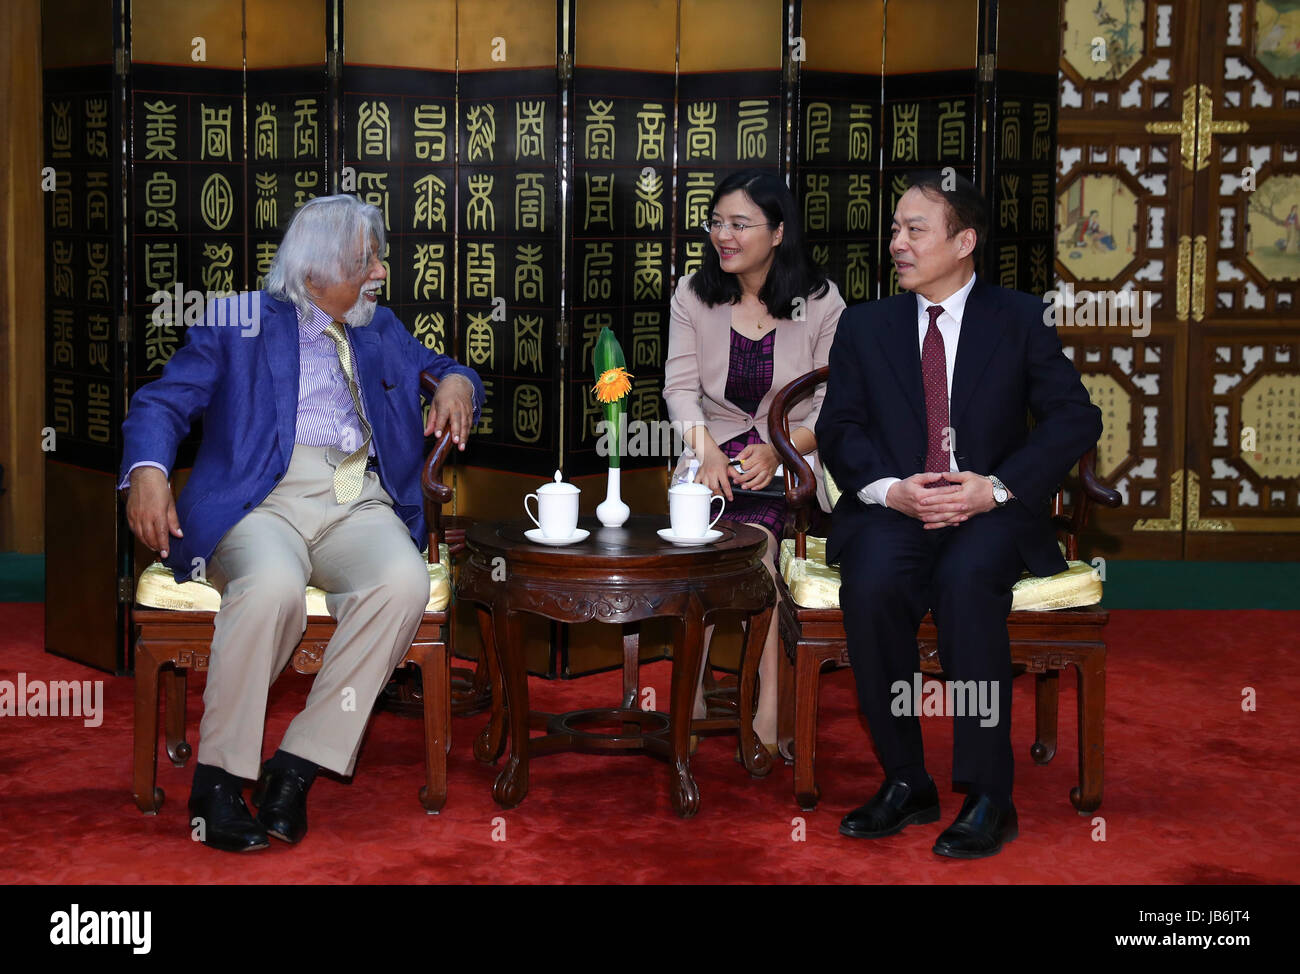 Beijing, China. 9th June, 2017. He Ping (R, front), editor-in-chief of China's Xinhua News Agency, meets with - Stock Image